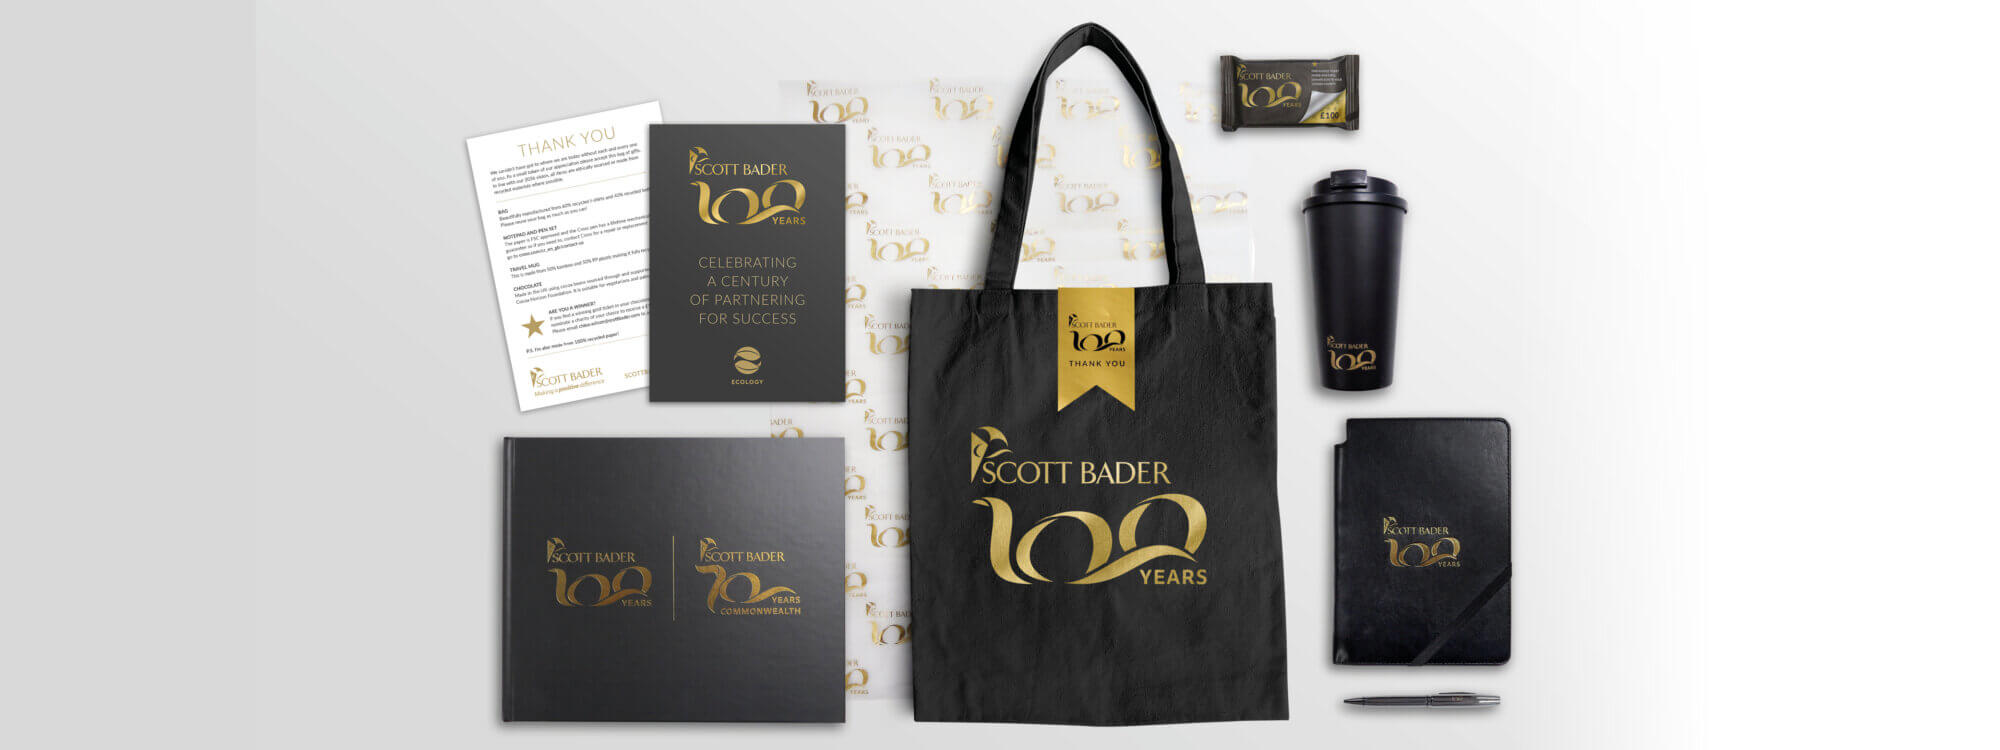 Our Centenary celebrations around the Scott Bader Group